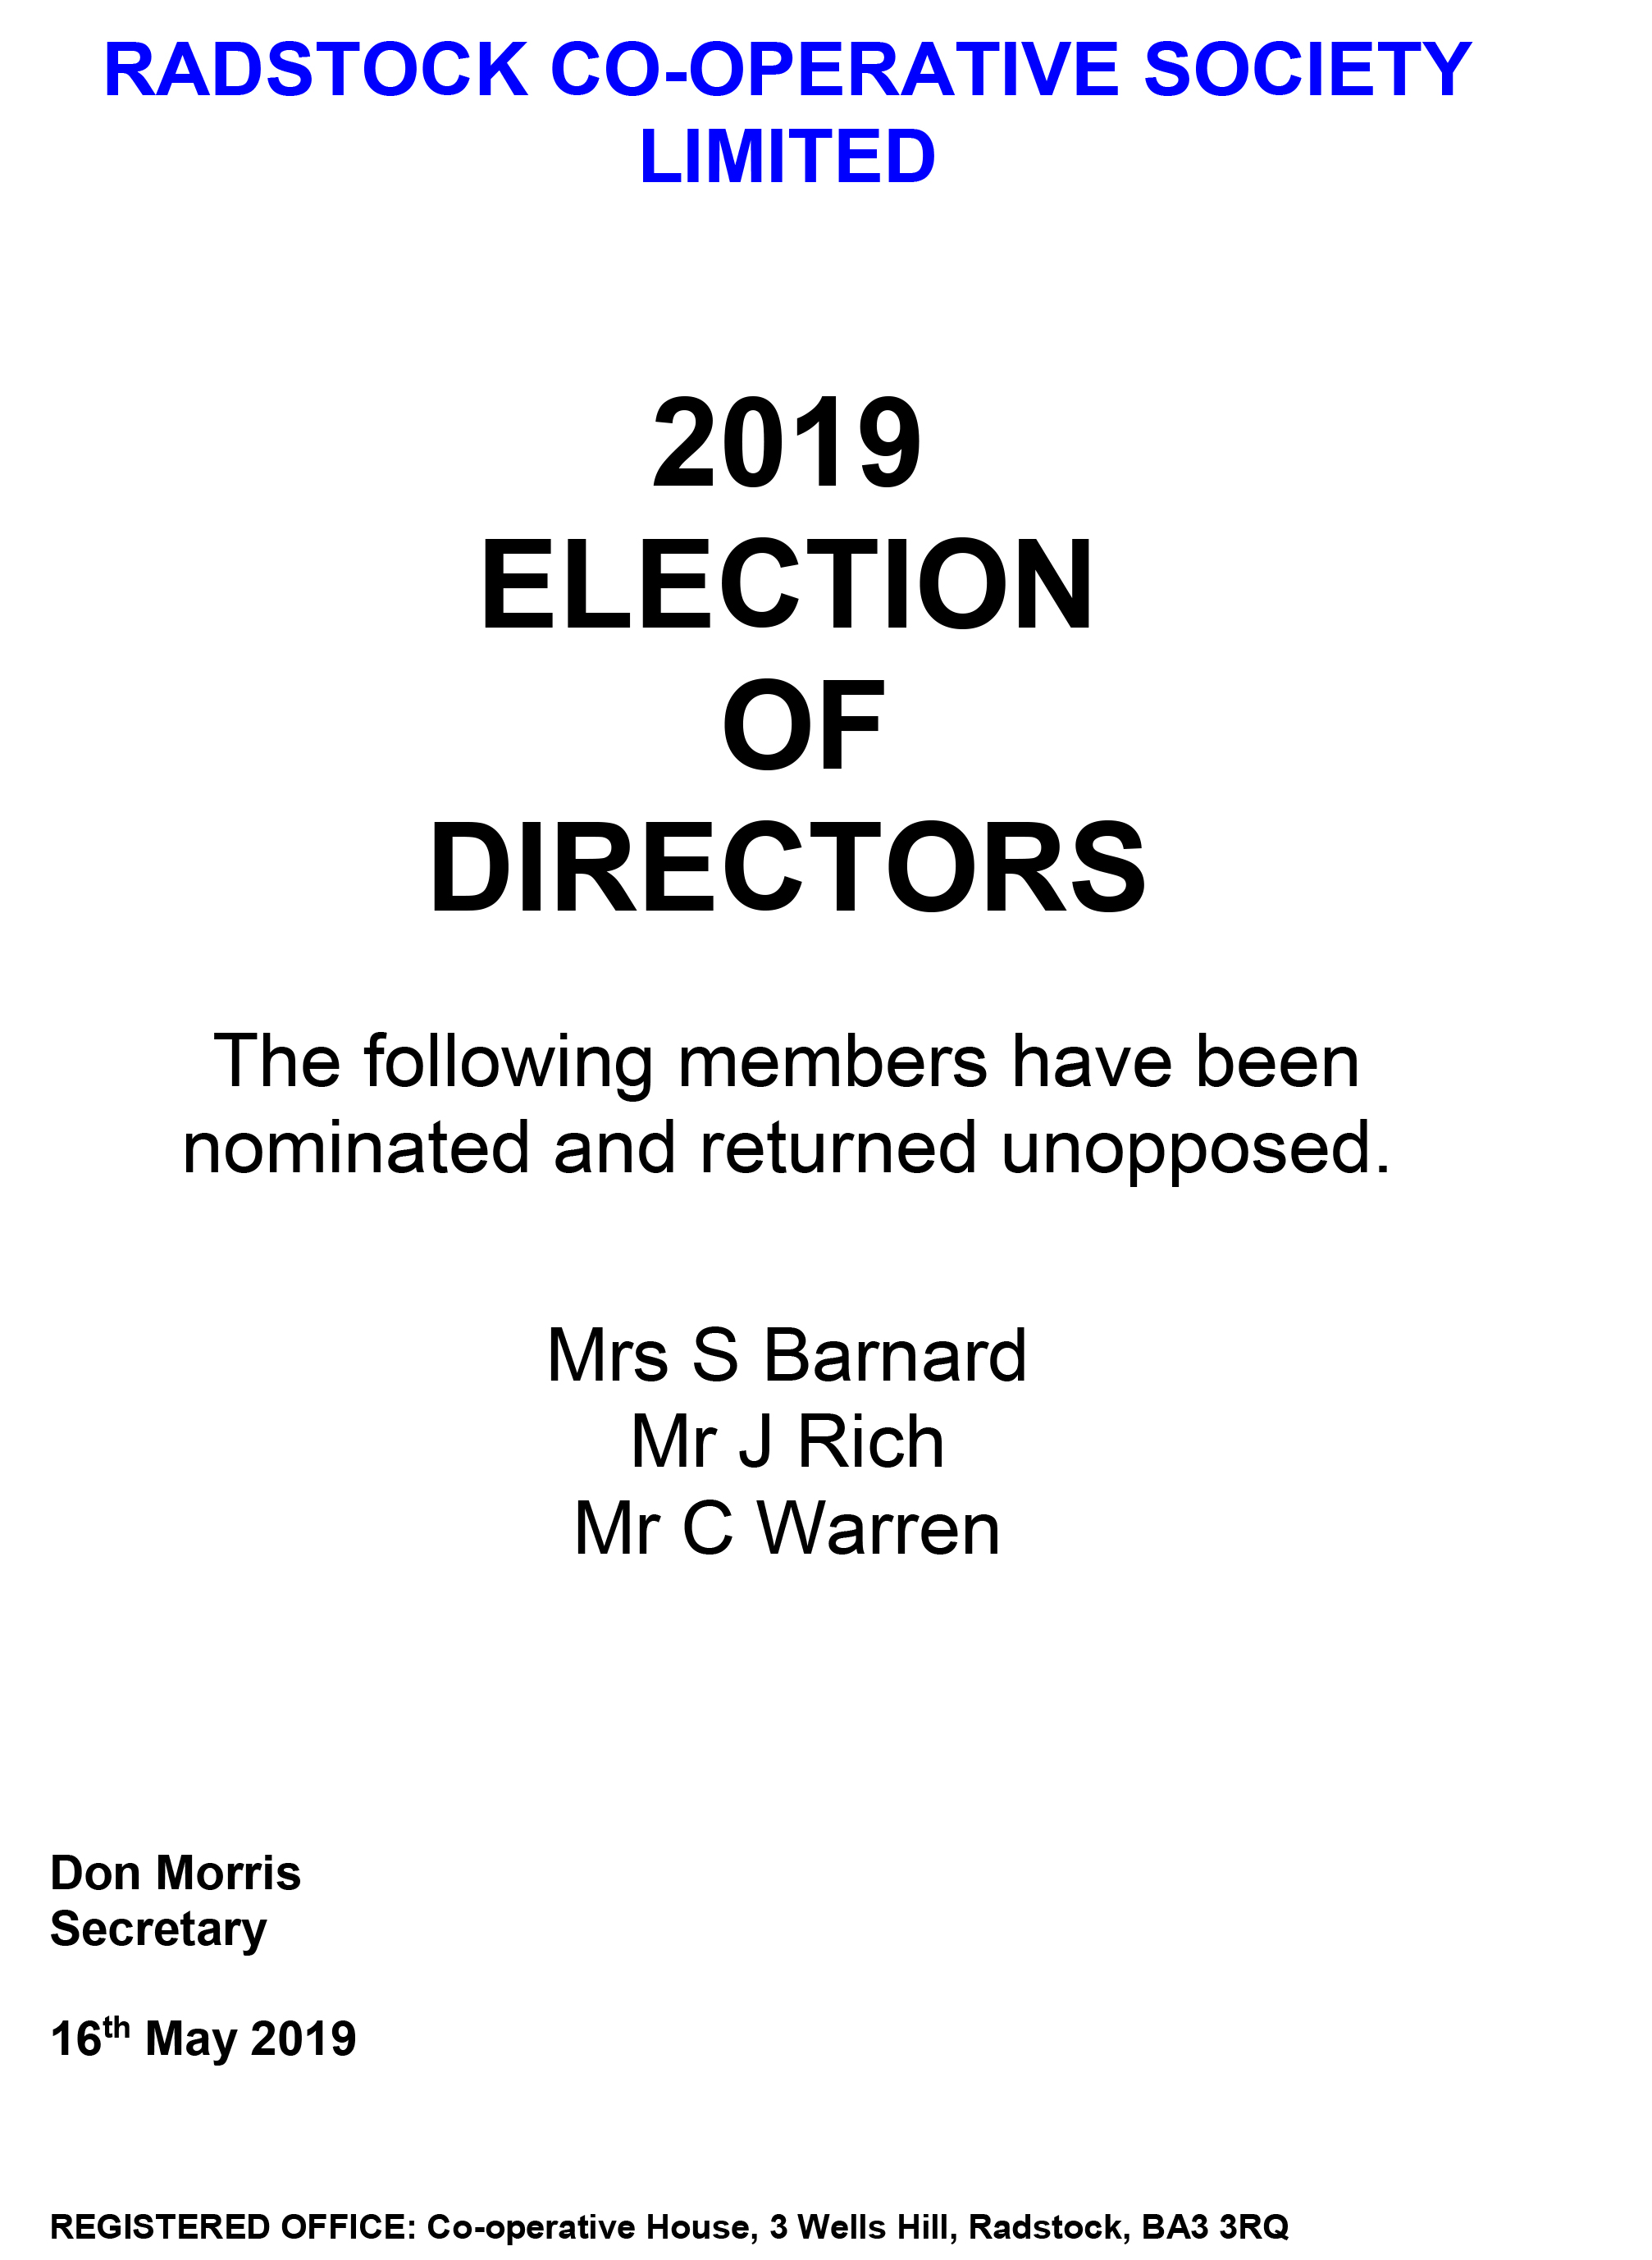 SIGN. ELECTION NOMINEE DETAILS - UNOPPOSED 2019 (002)